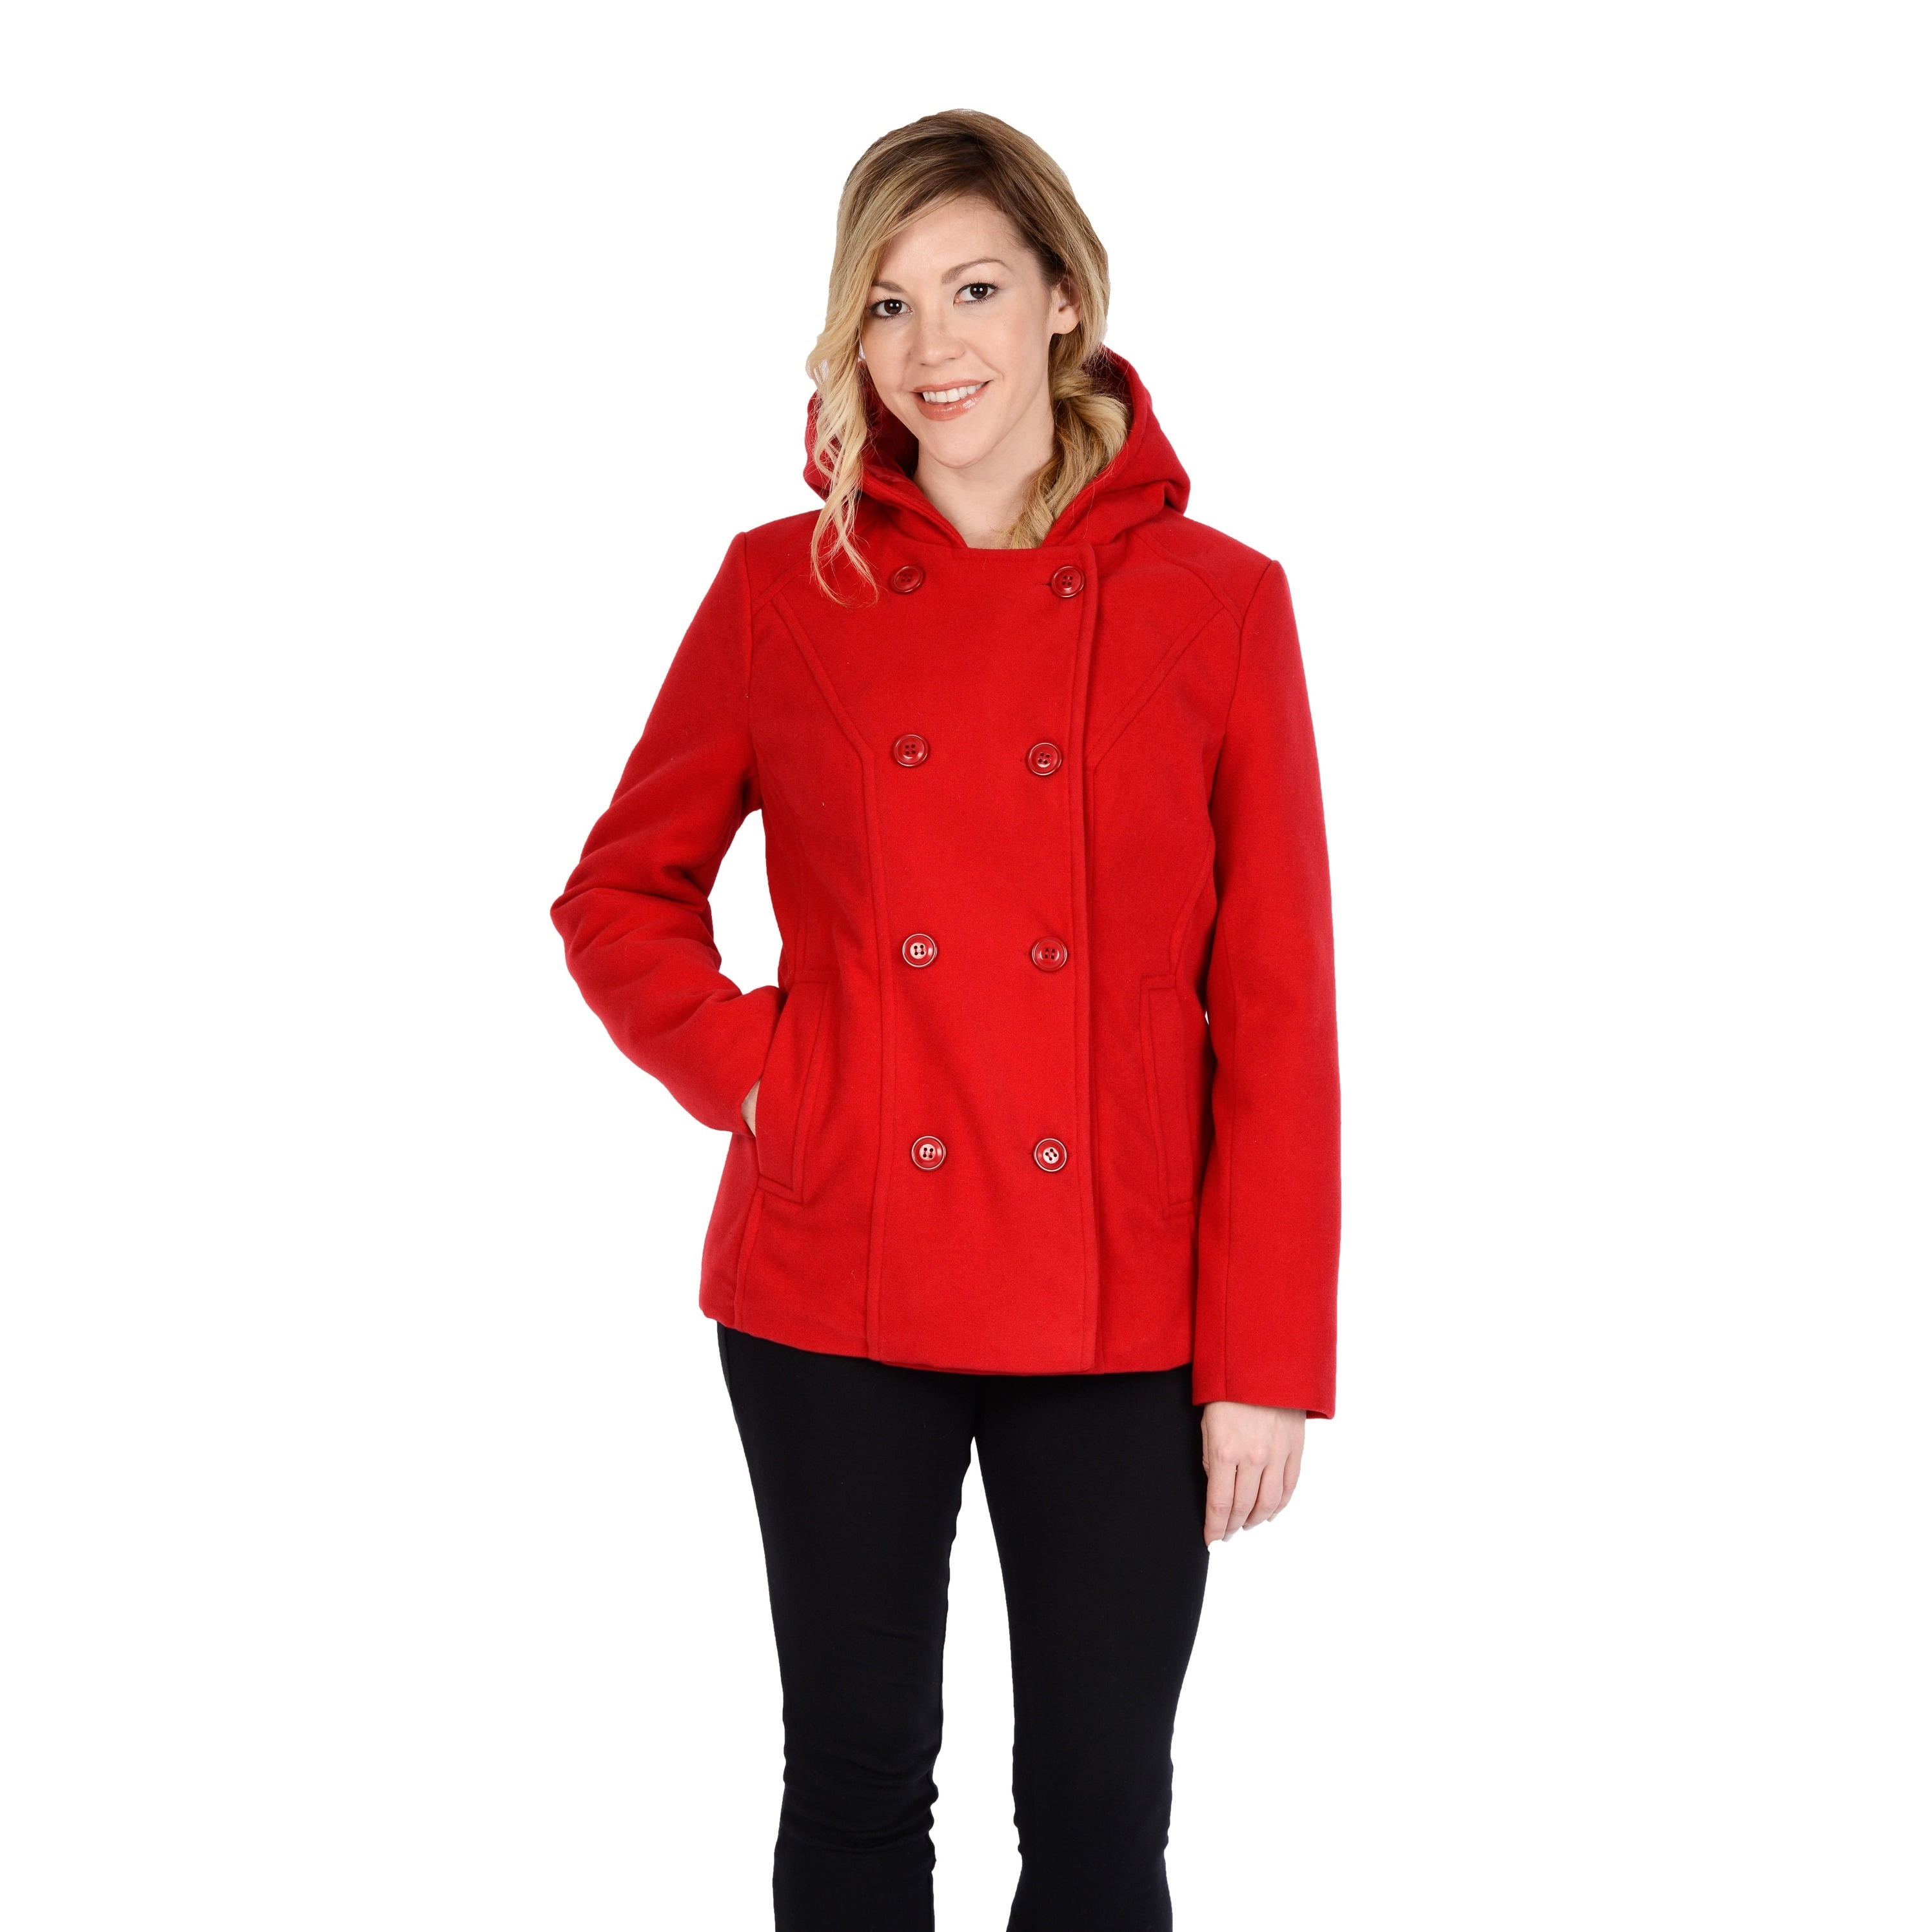 Shop the latest styles of Womens Peacoat Coats at Macys. Check out our designer collection of chic coats including peacoats, trench coats, puffer coats and more! Red (27) Tan/Beige (13) White (1) Celebrity Pink Juniors' Plus Size Hooded Peacoat.